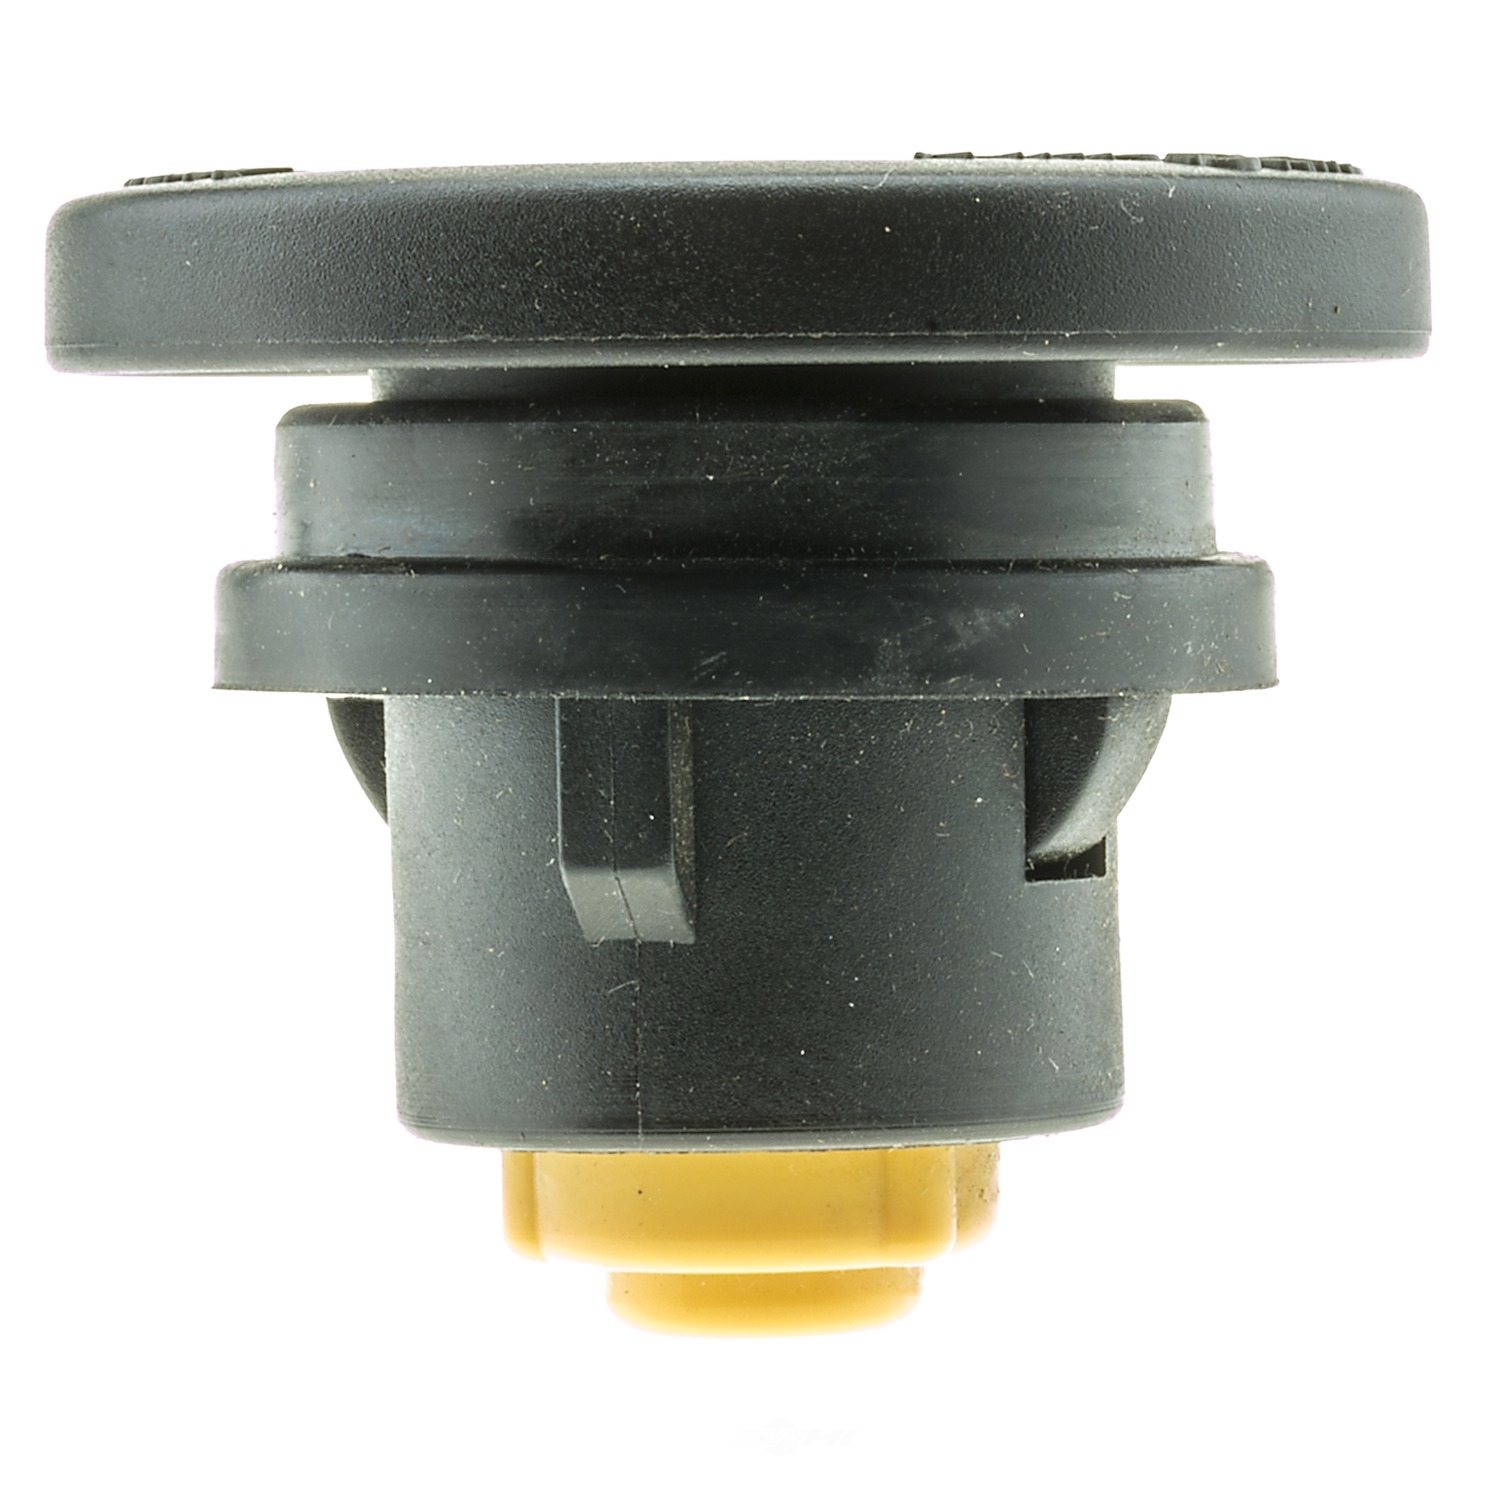 STANT - Regular Locking Fuel Cap - STN 10563